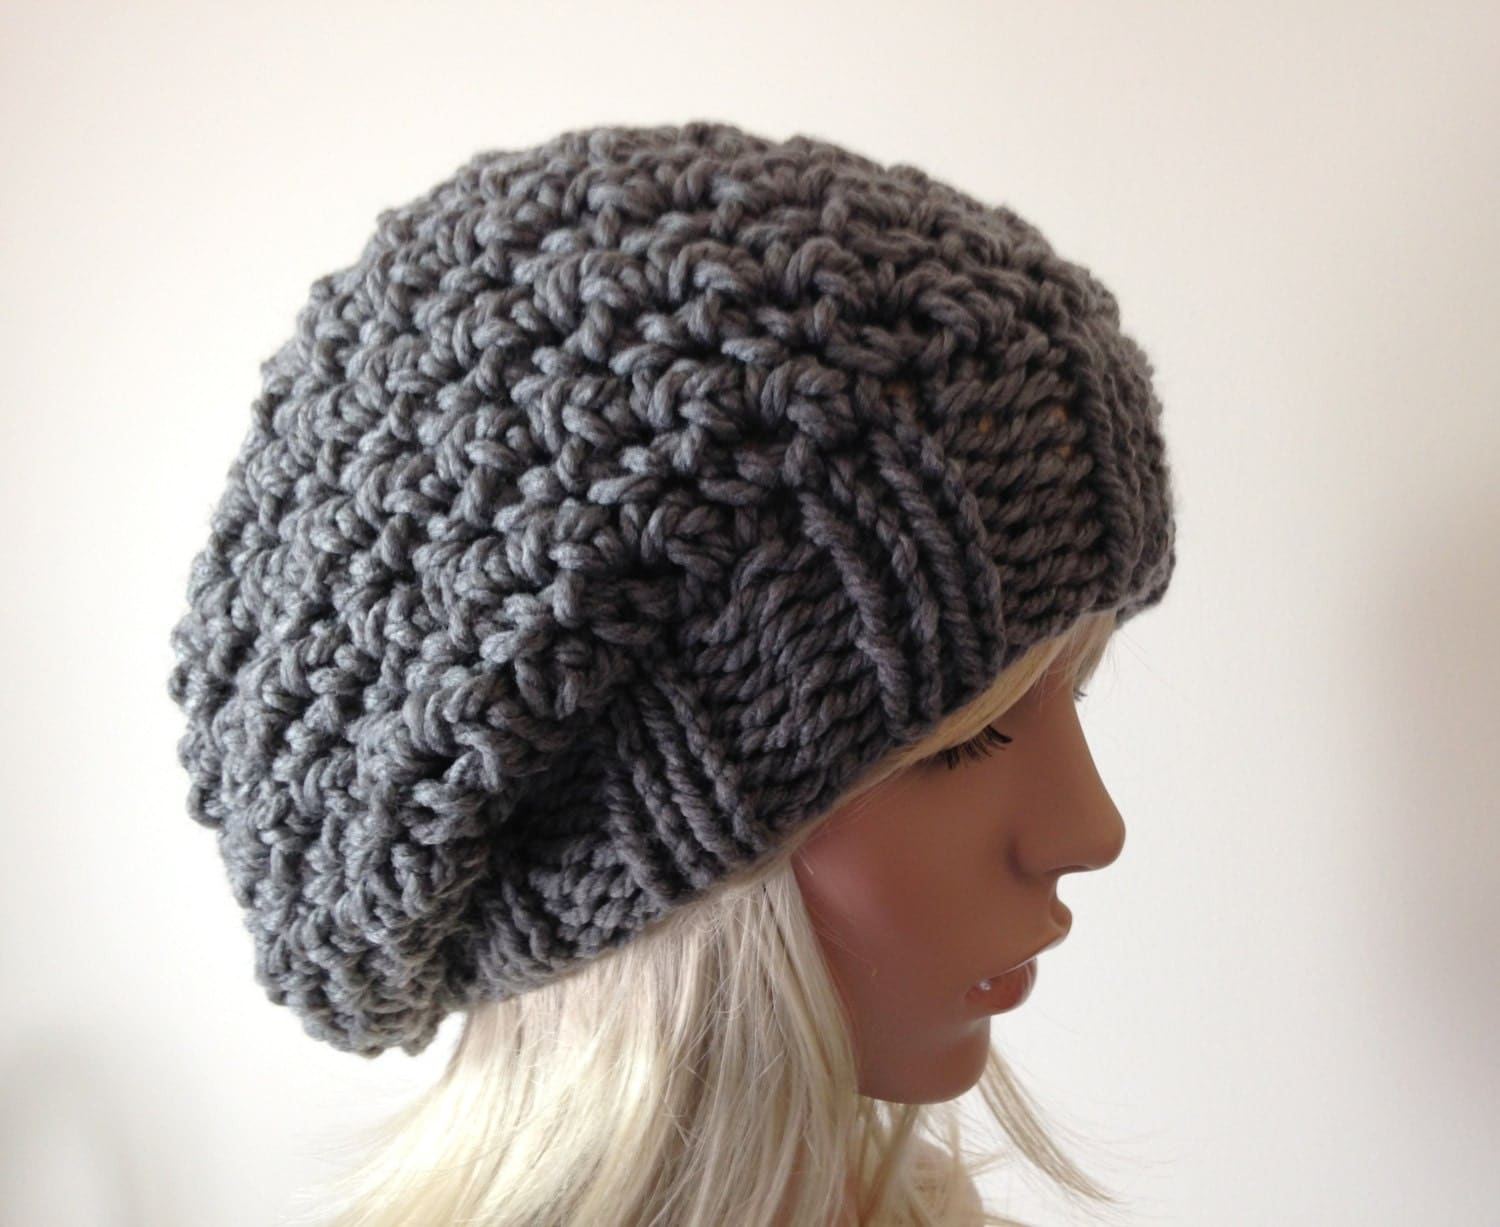 Crochet Beanie Pattern J Hook : Instant Download Knitting PATTERN Knit Hat Pattern Crocheted